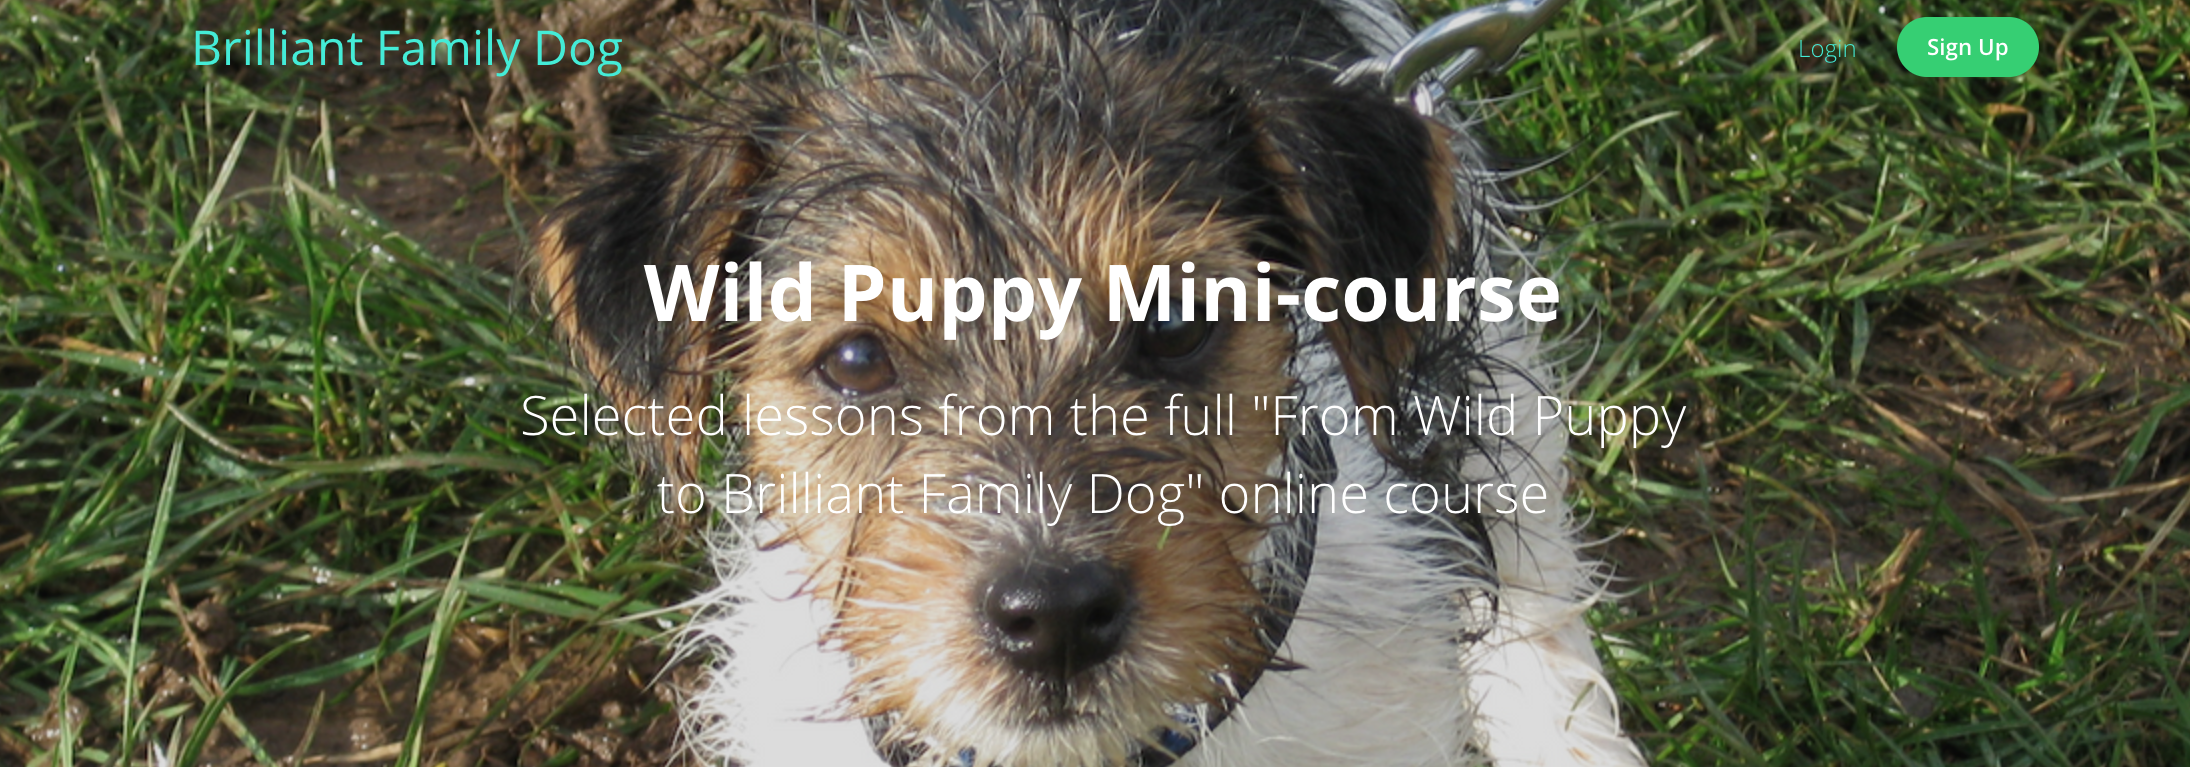 Puppy mini-course | www.brilliantfamilydog.com